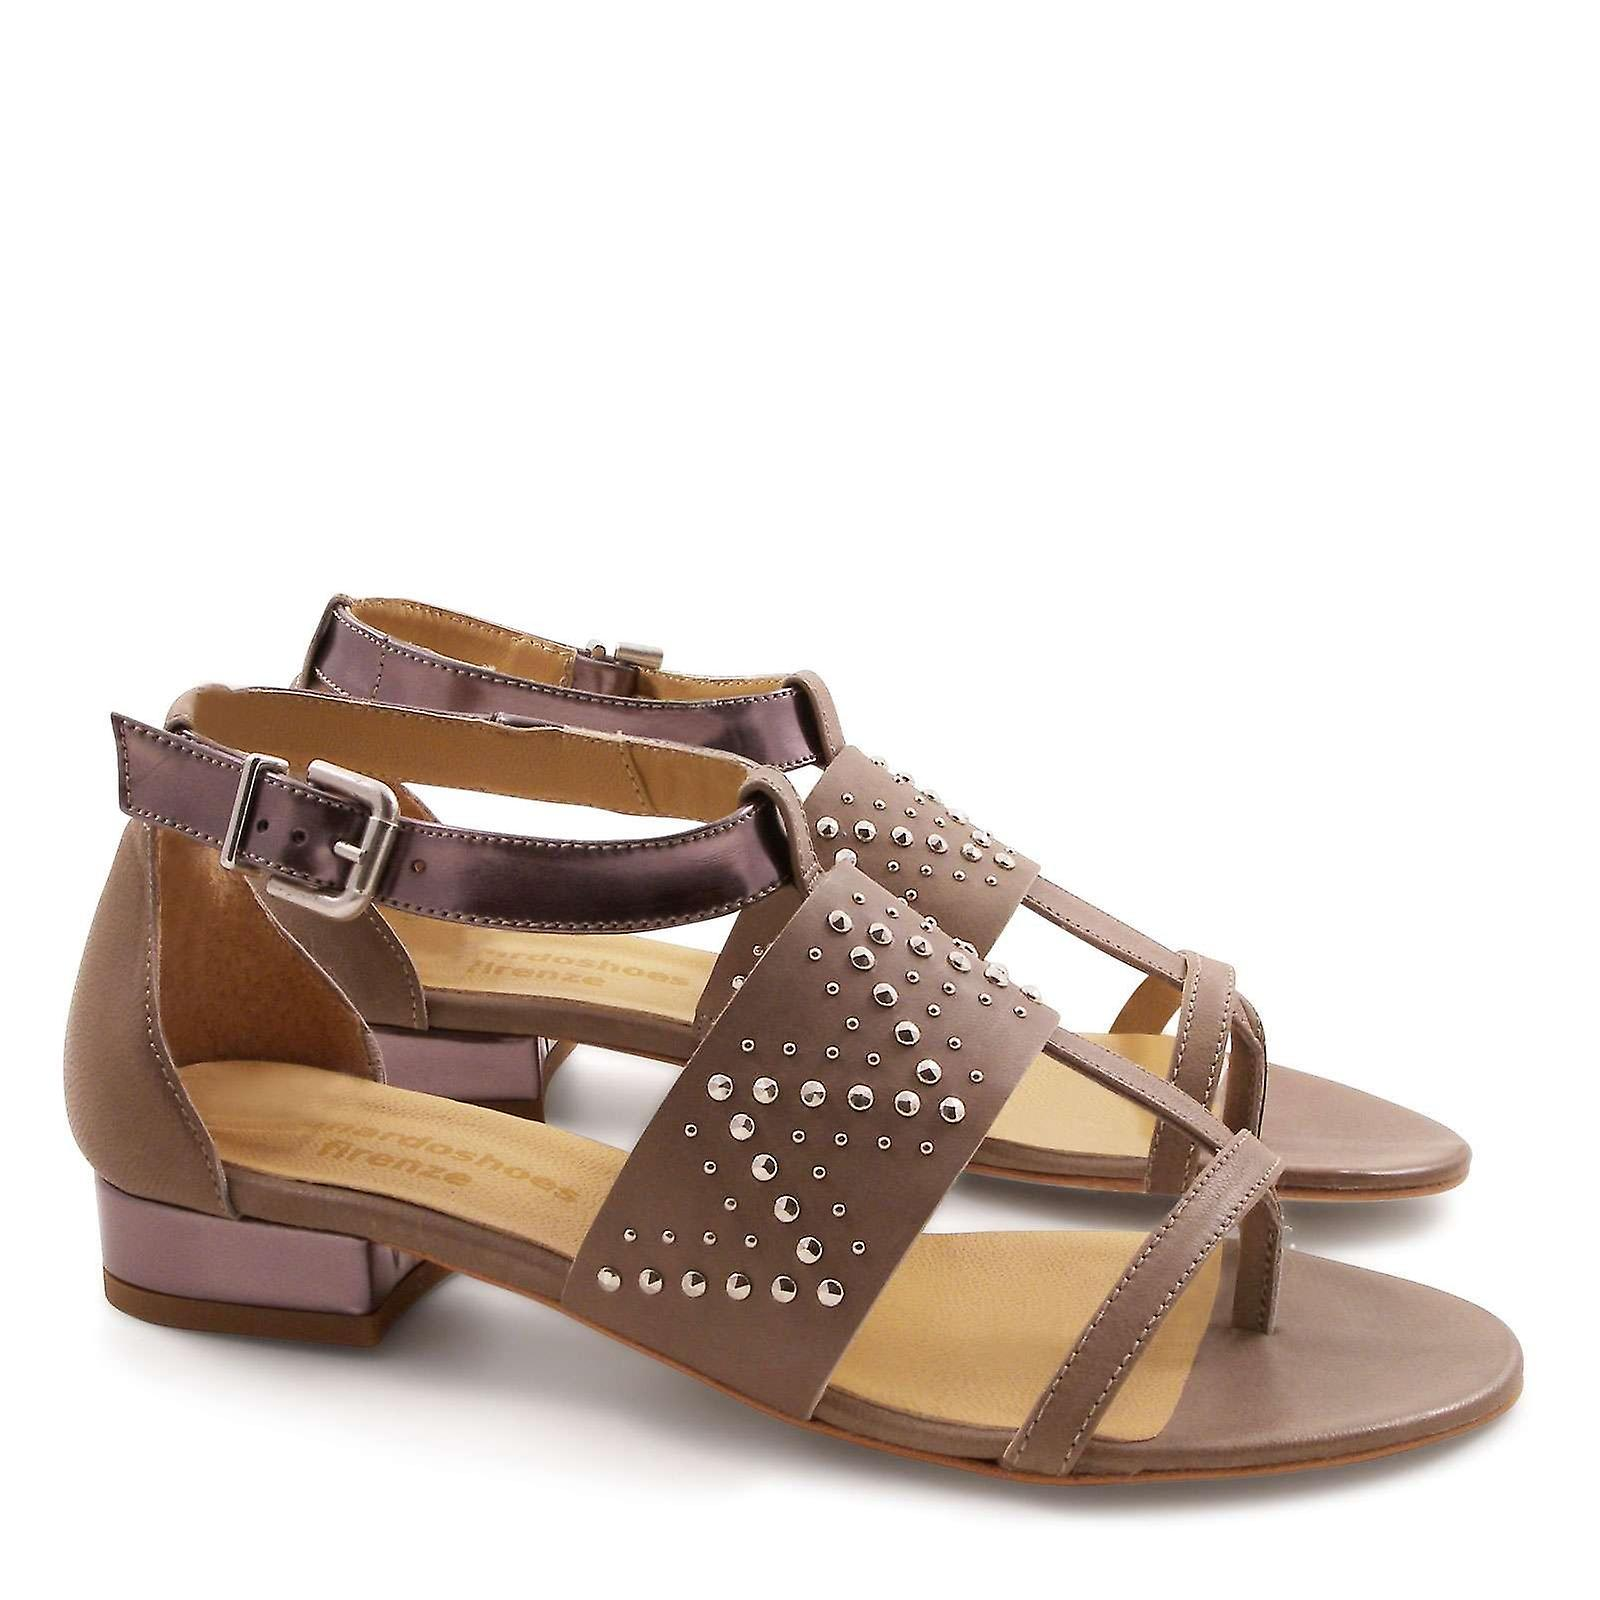 Strappy low heels sandals in mink leather